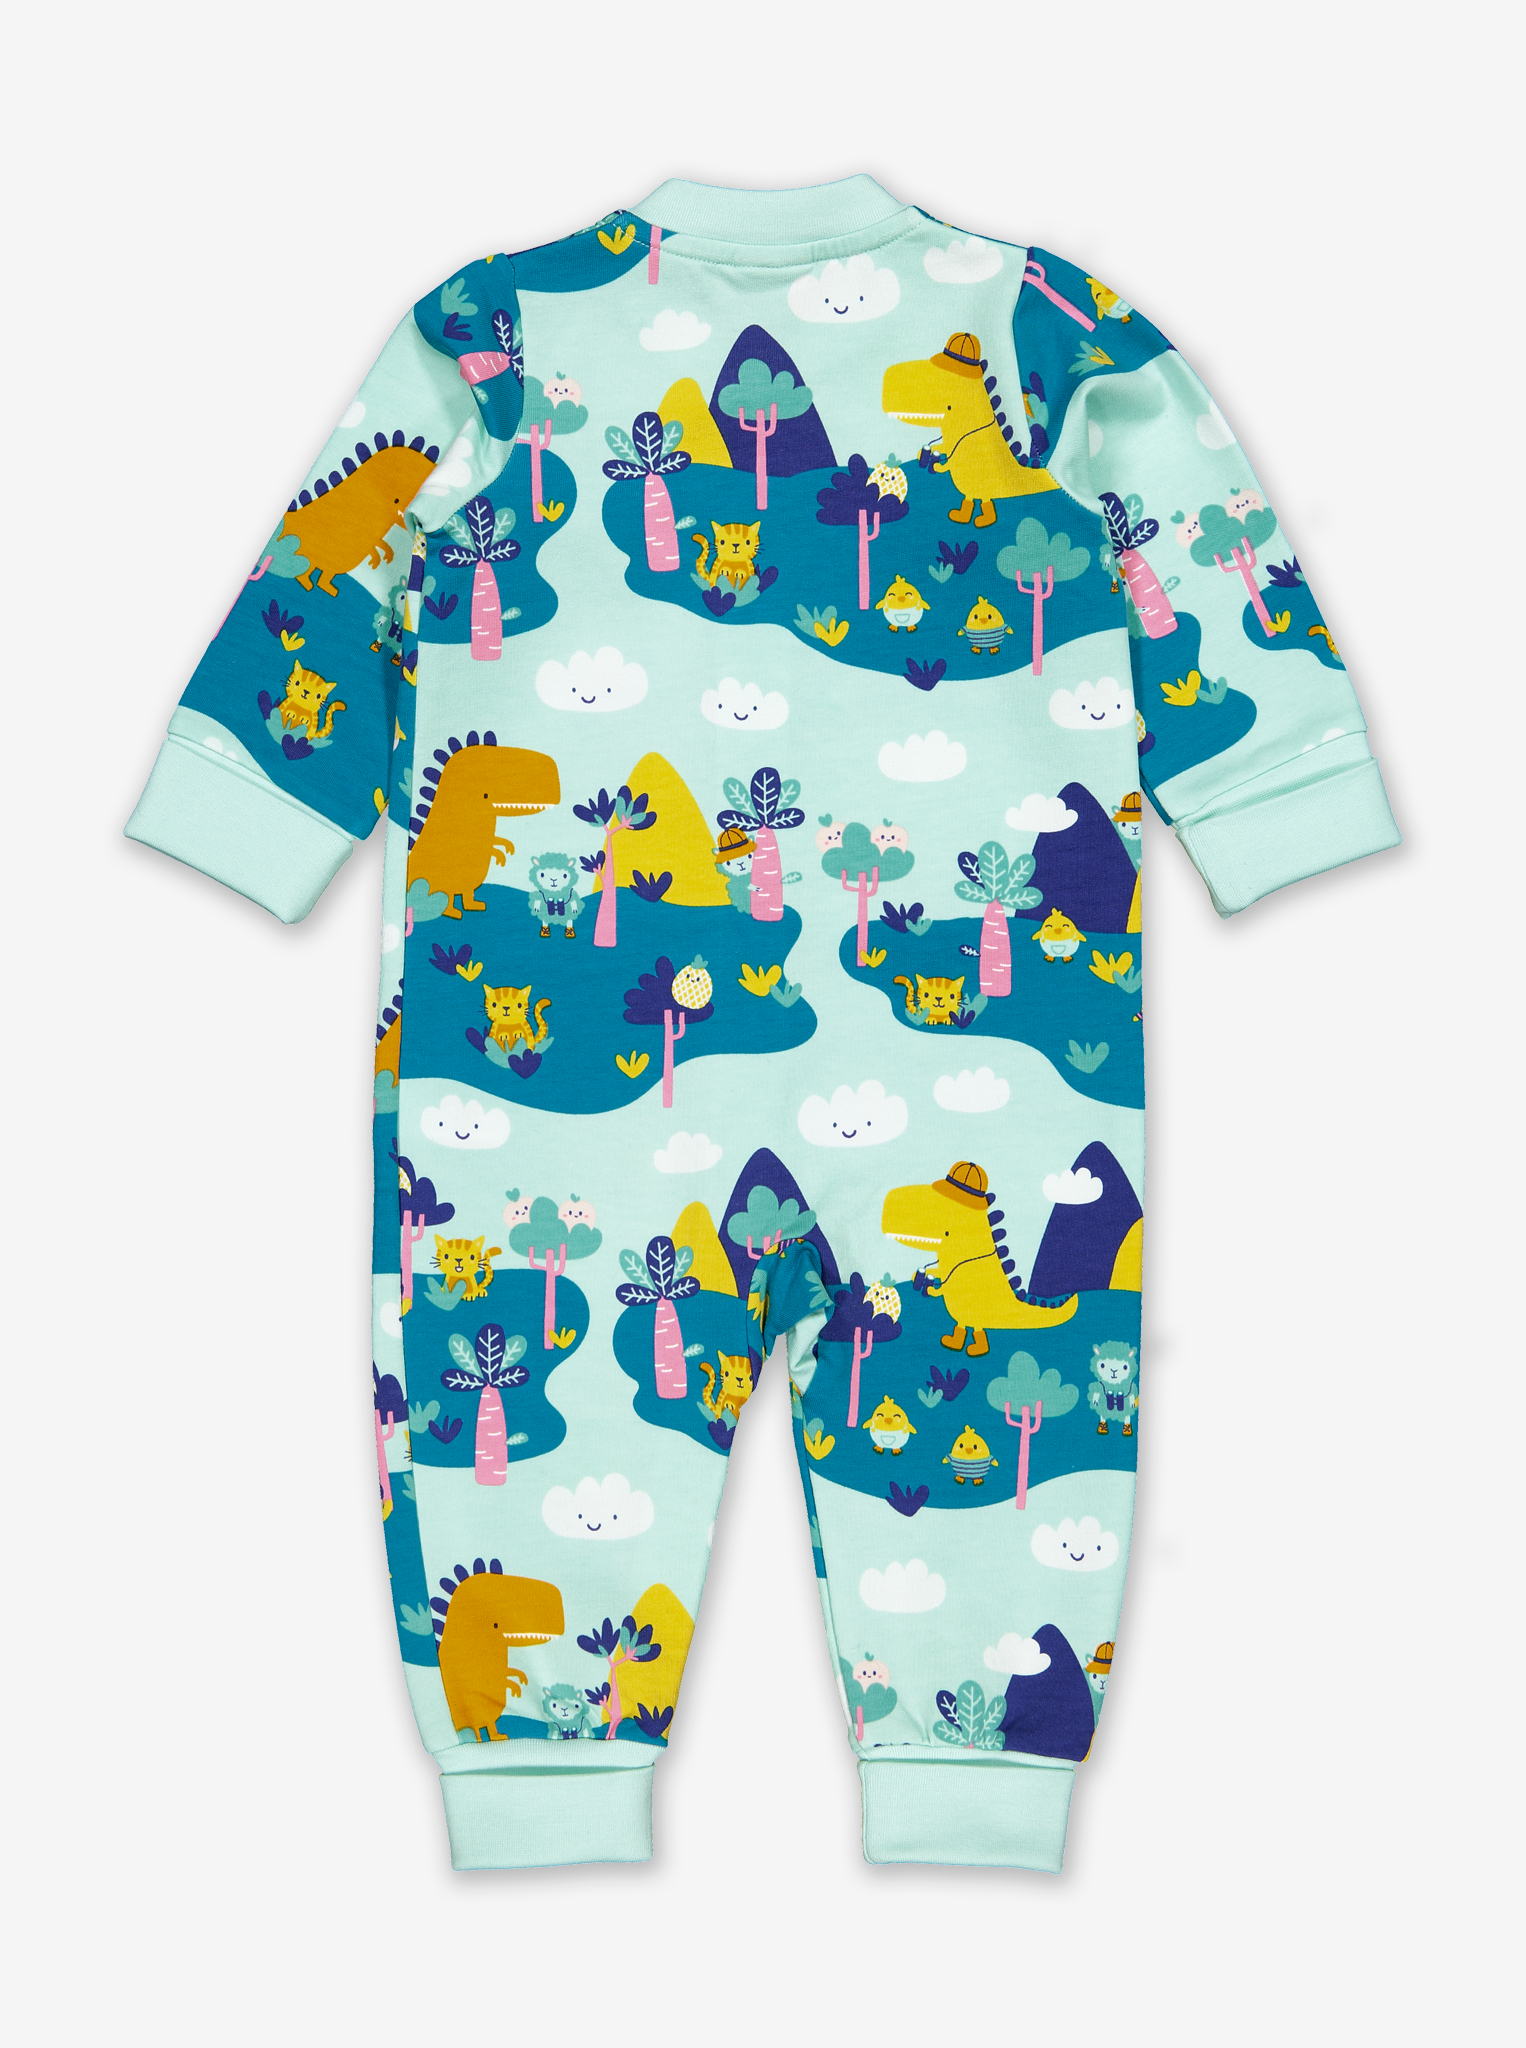 Dinosaur Safari Baby All-in-one-Unisex-0-1y-Turquoise